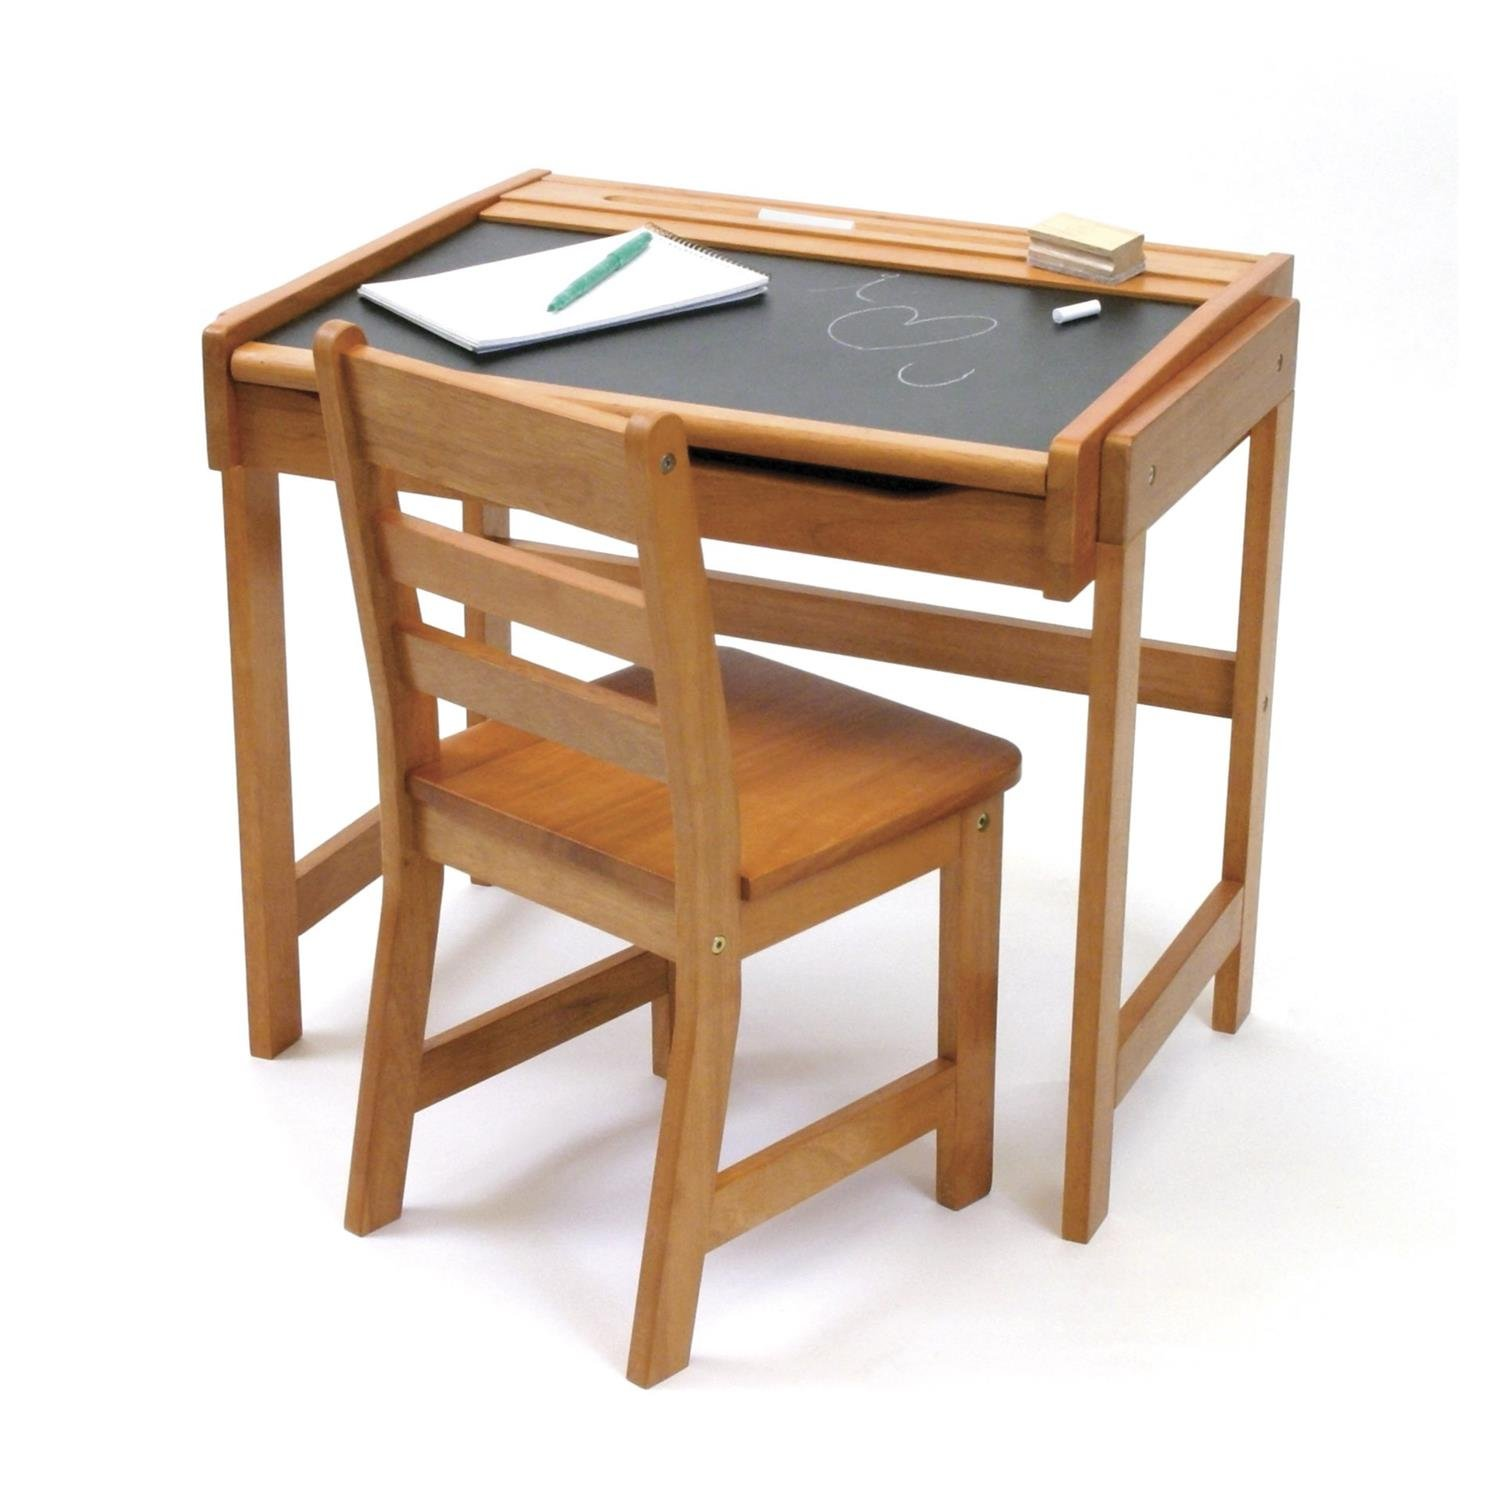 Homework desk and chair